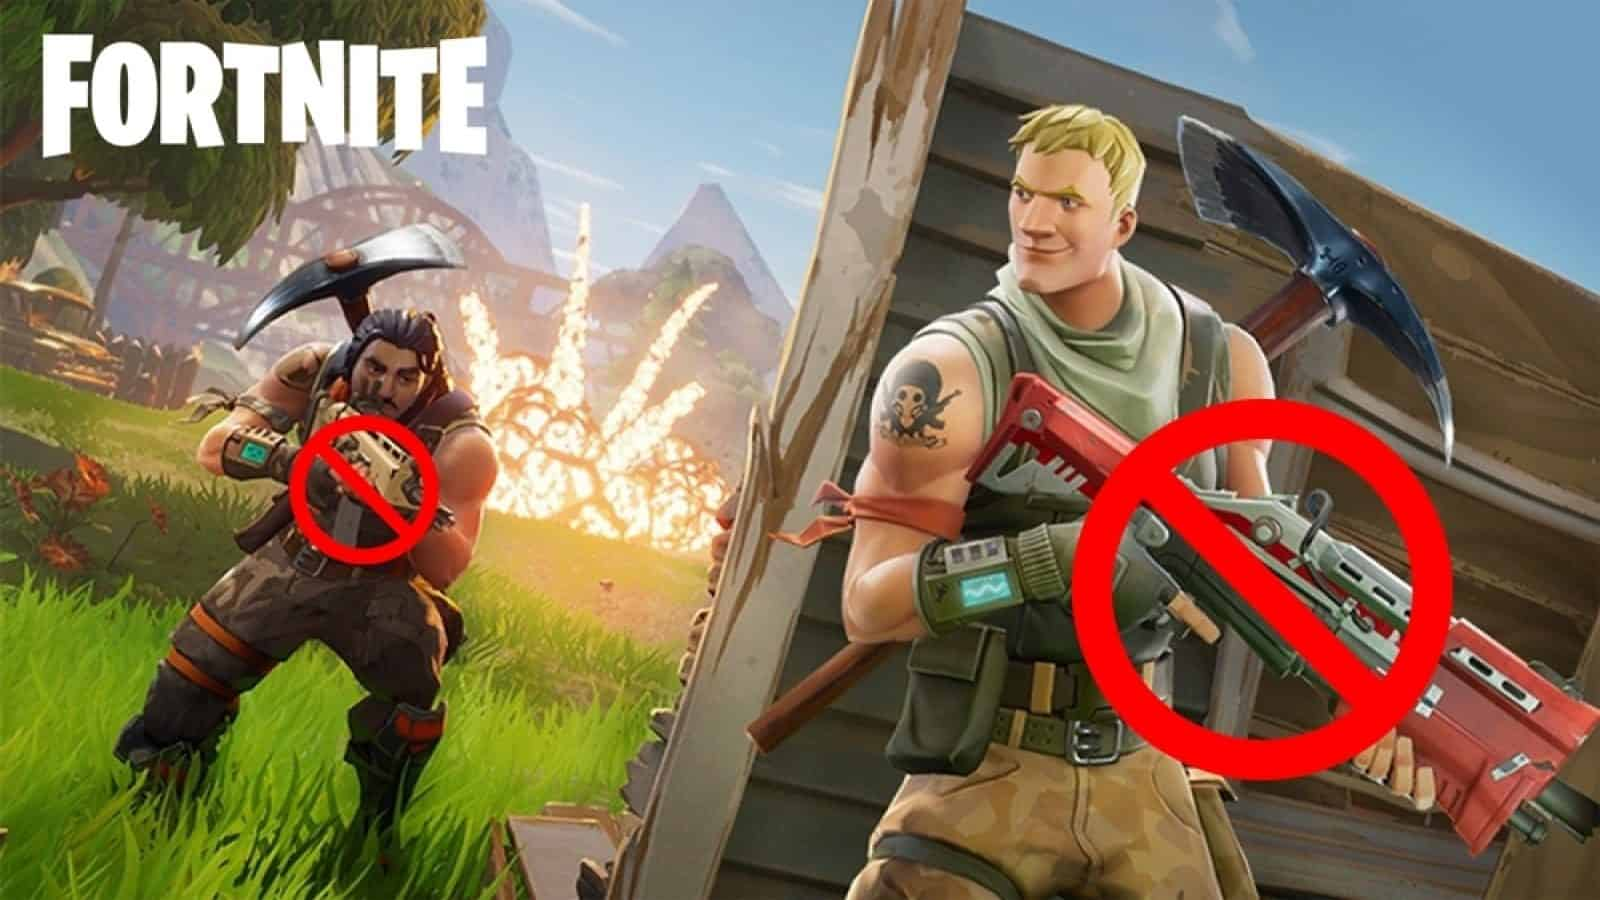 How To Unblock Someone on Fortnite?